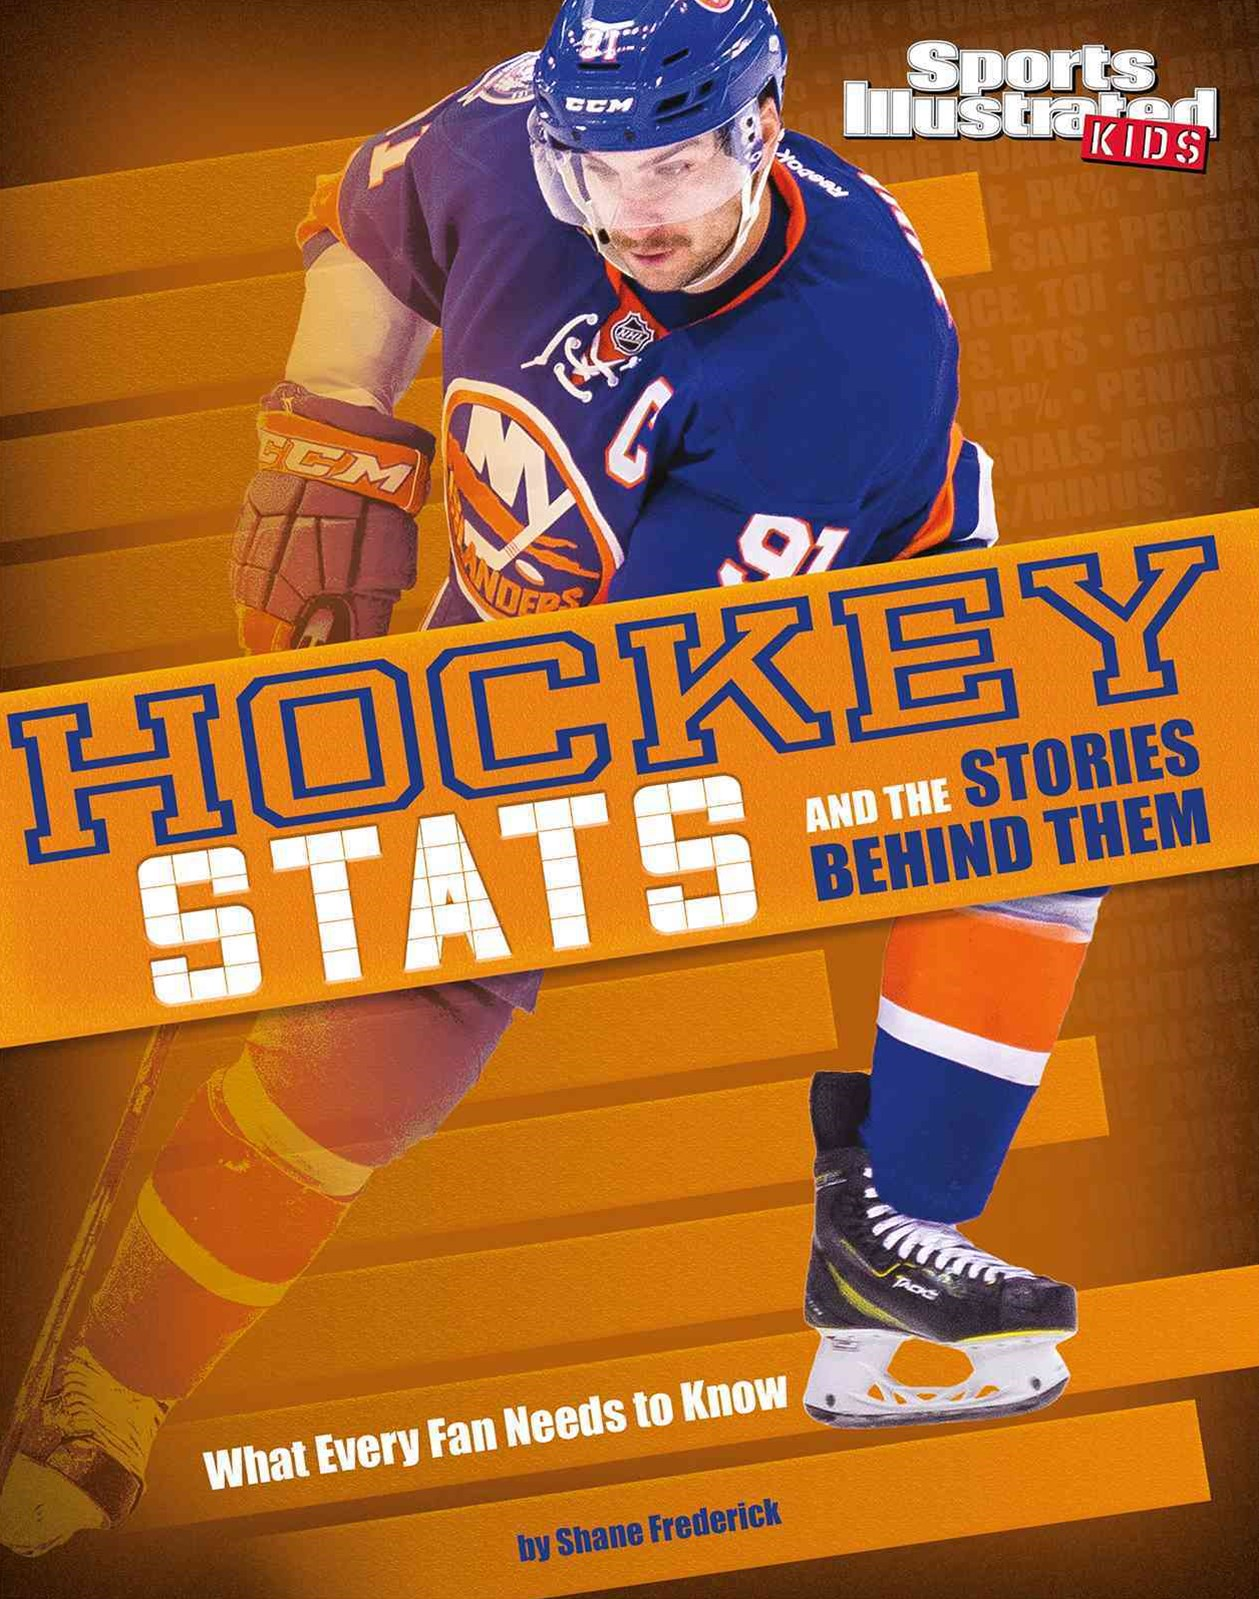 Hockey Stats and the Stories Behind Them